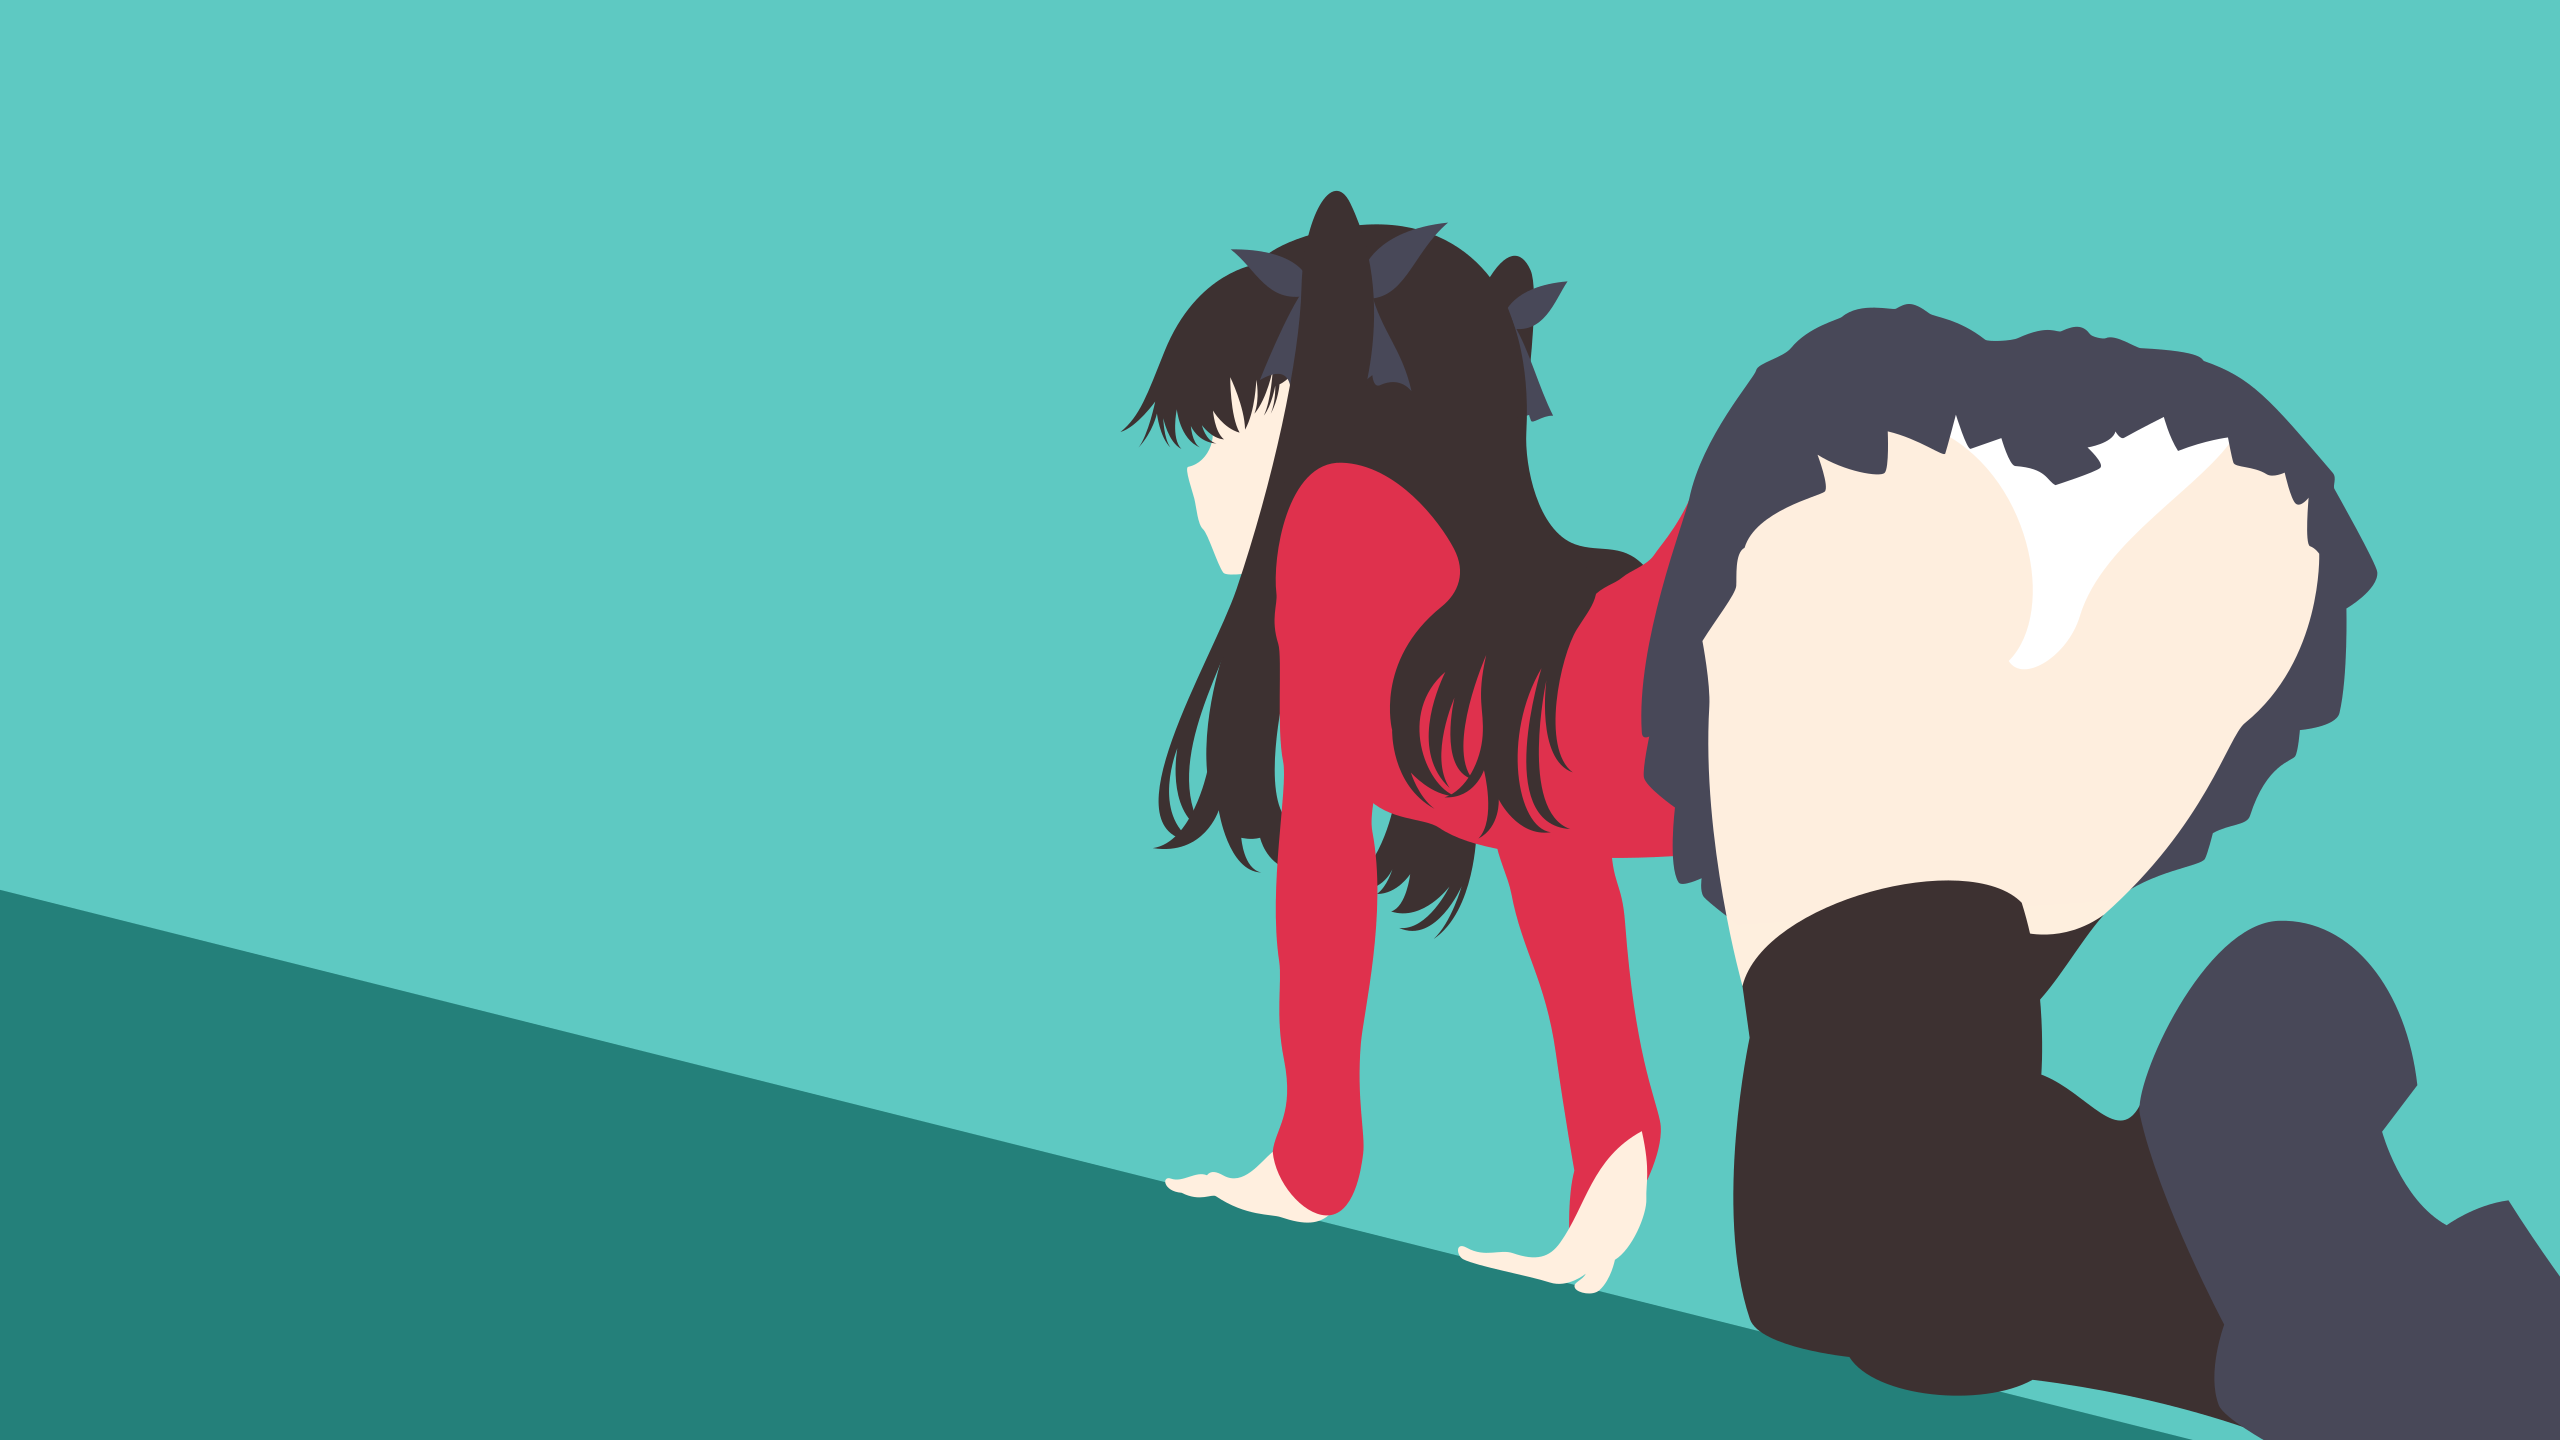 Fate Series - Tohsaka Rin minimalism wallpaper by Carionto